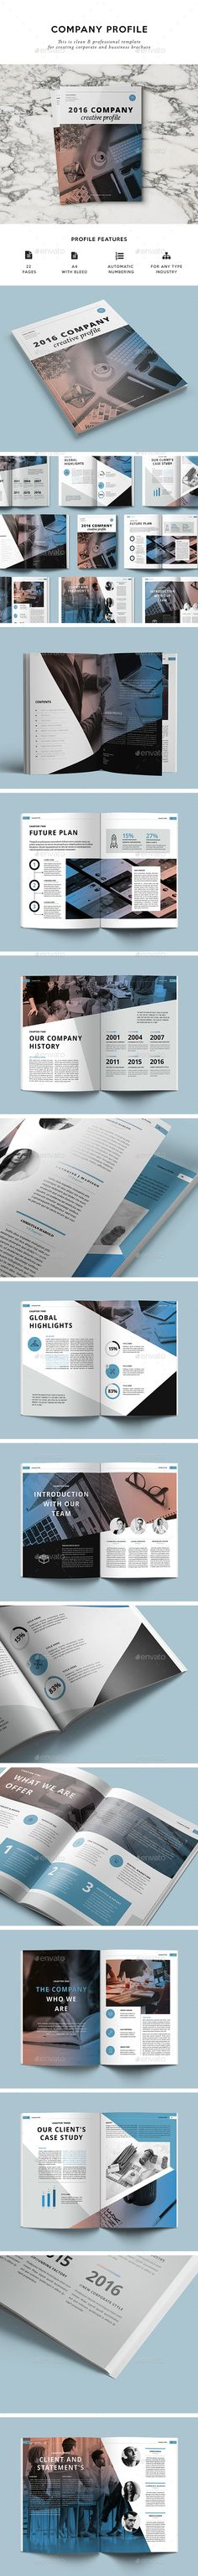 Free Download - Company Profile Template - Brochure - Magazine - company profile sample download